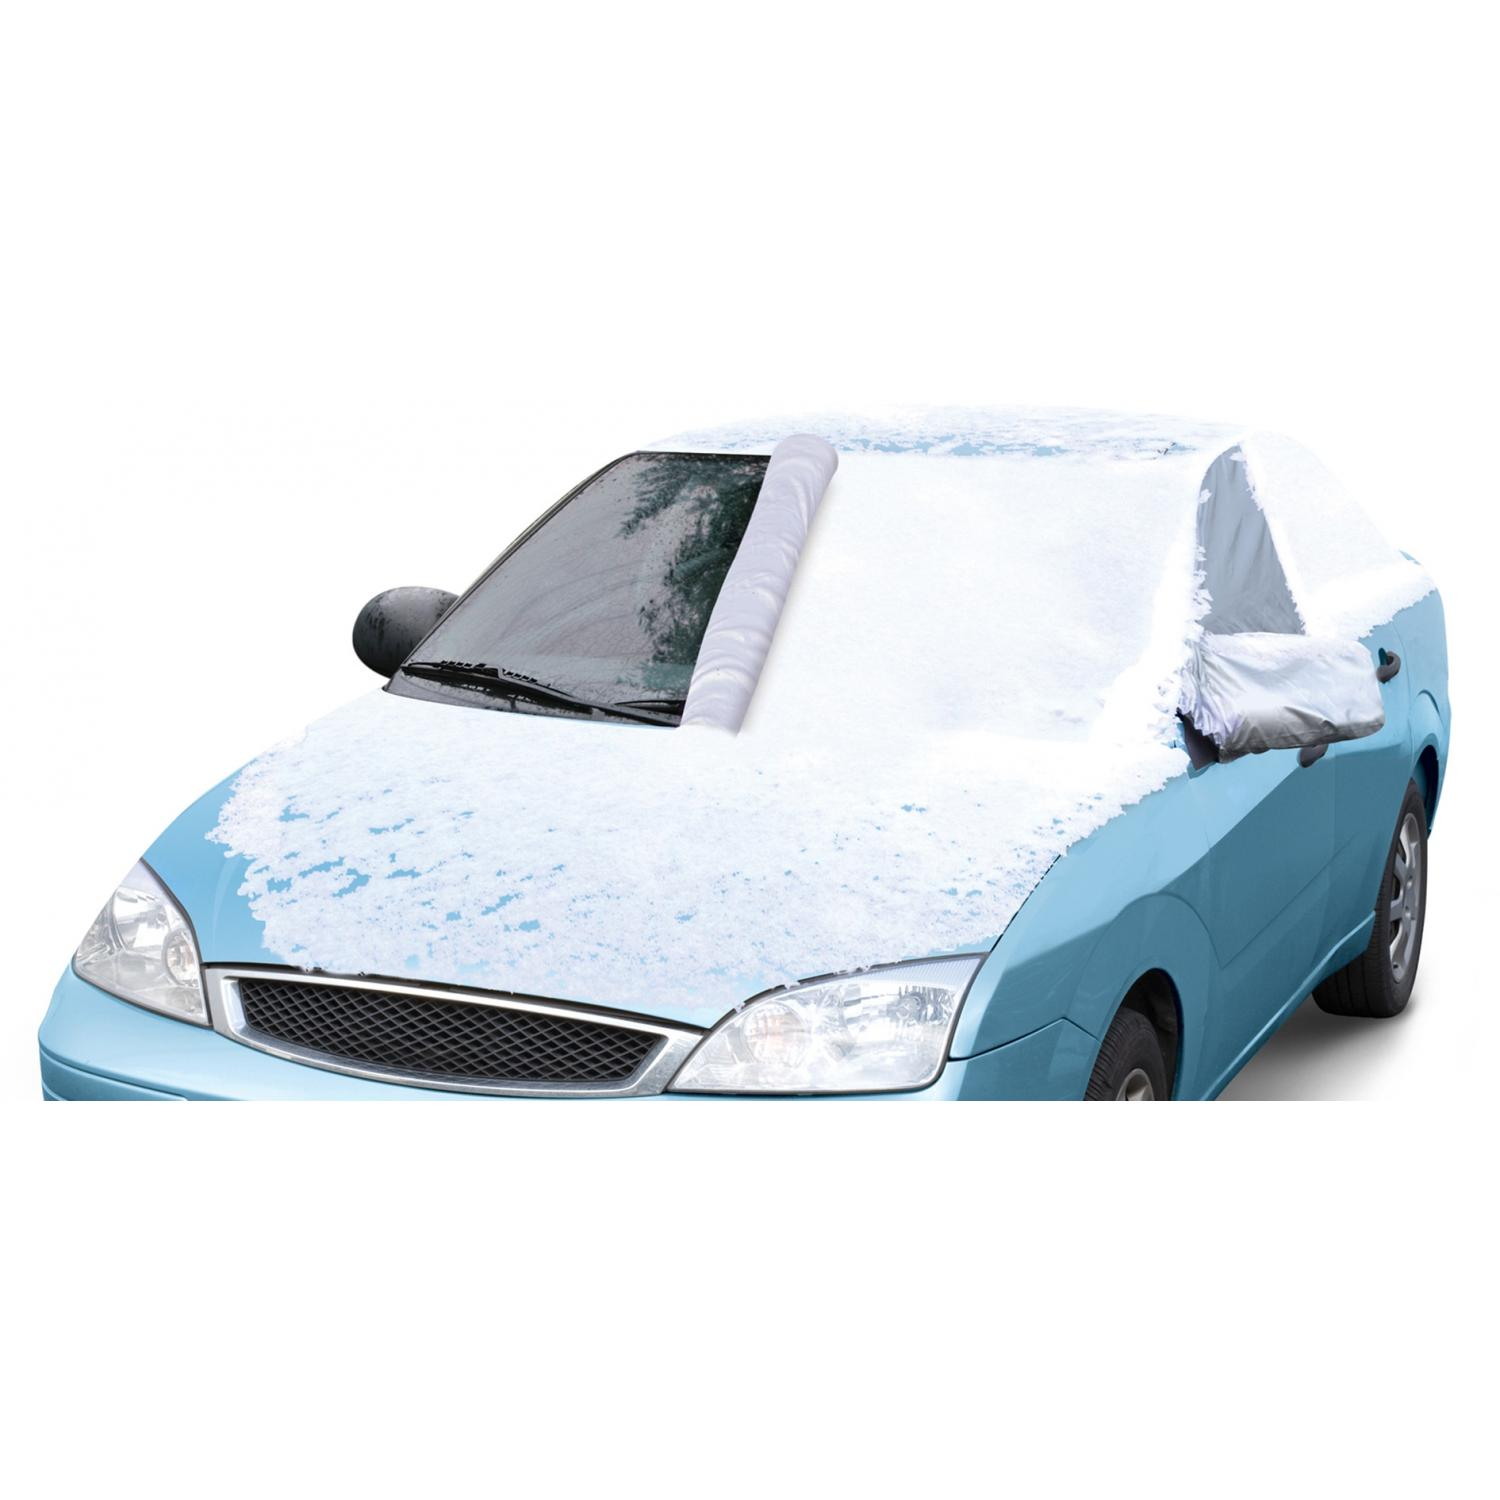 Classic Accessories Deluxe Windshield Snow Cover - Silver - Medium